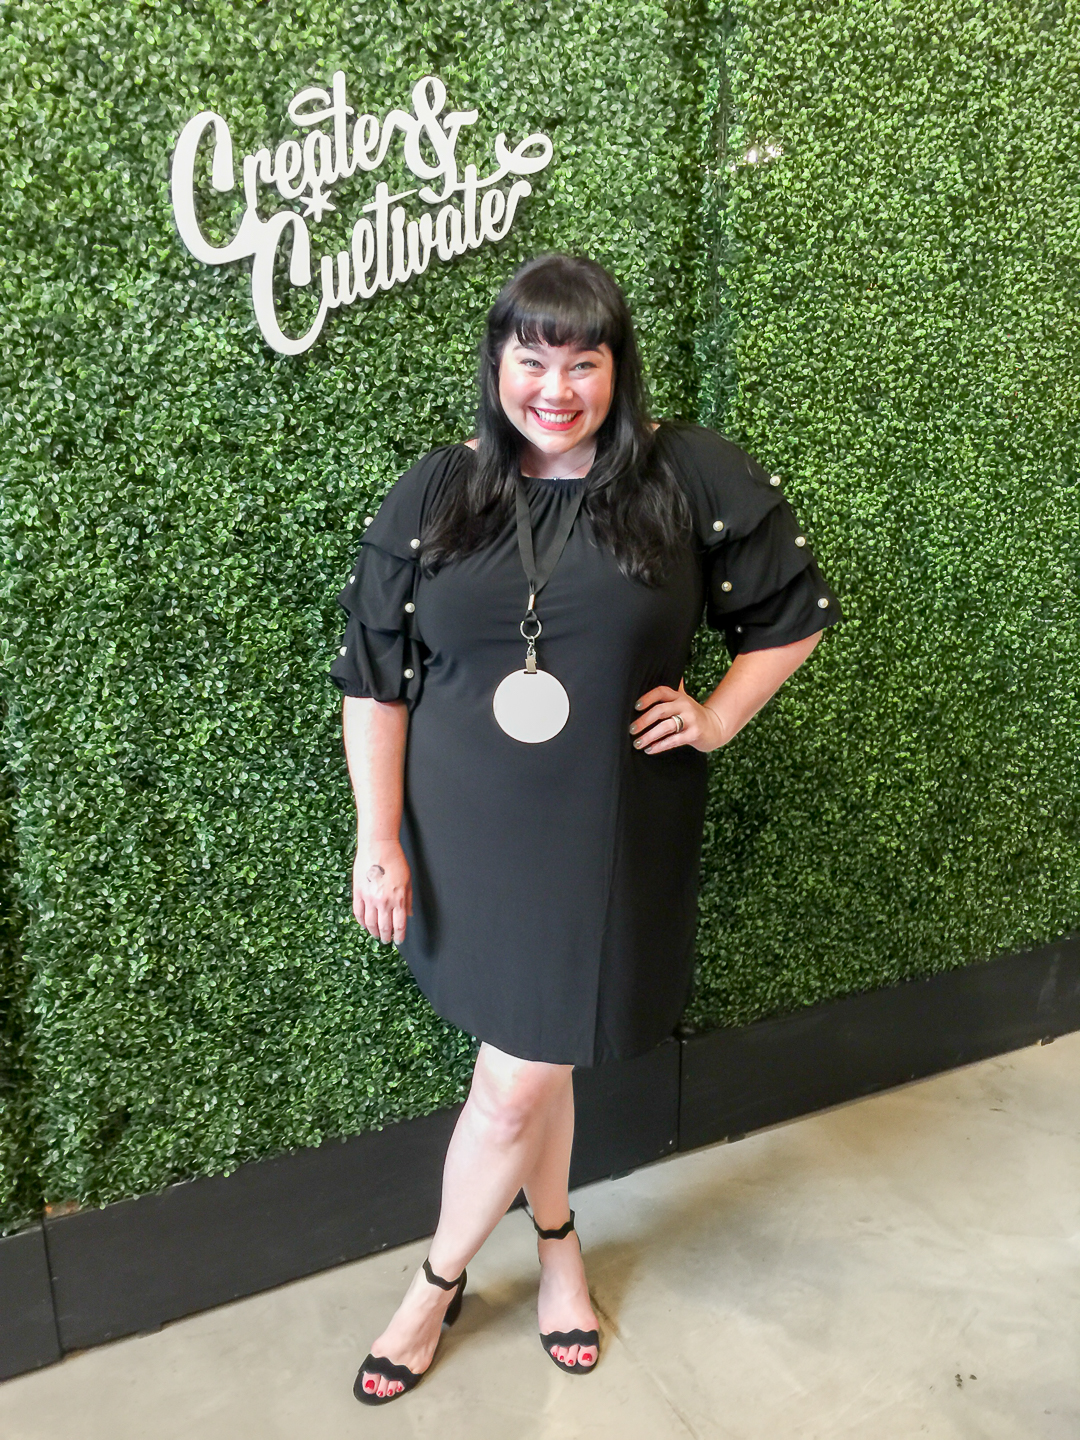 Plus Size Blogger in JCPenney clothes at Create and Cultivate Chicago